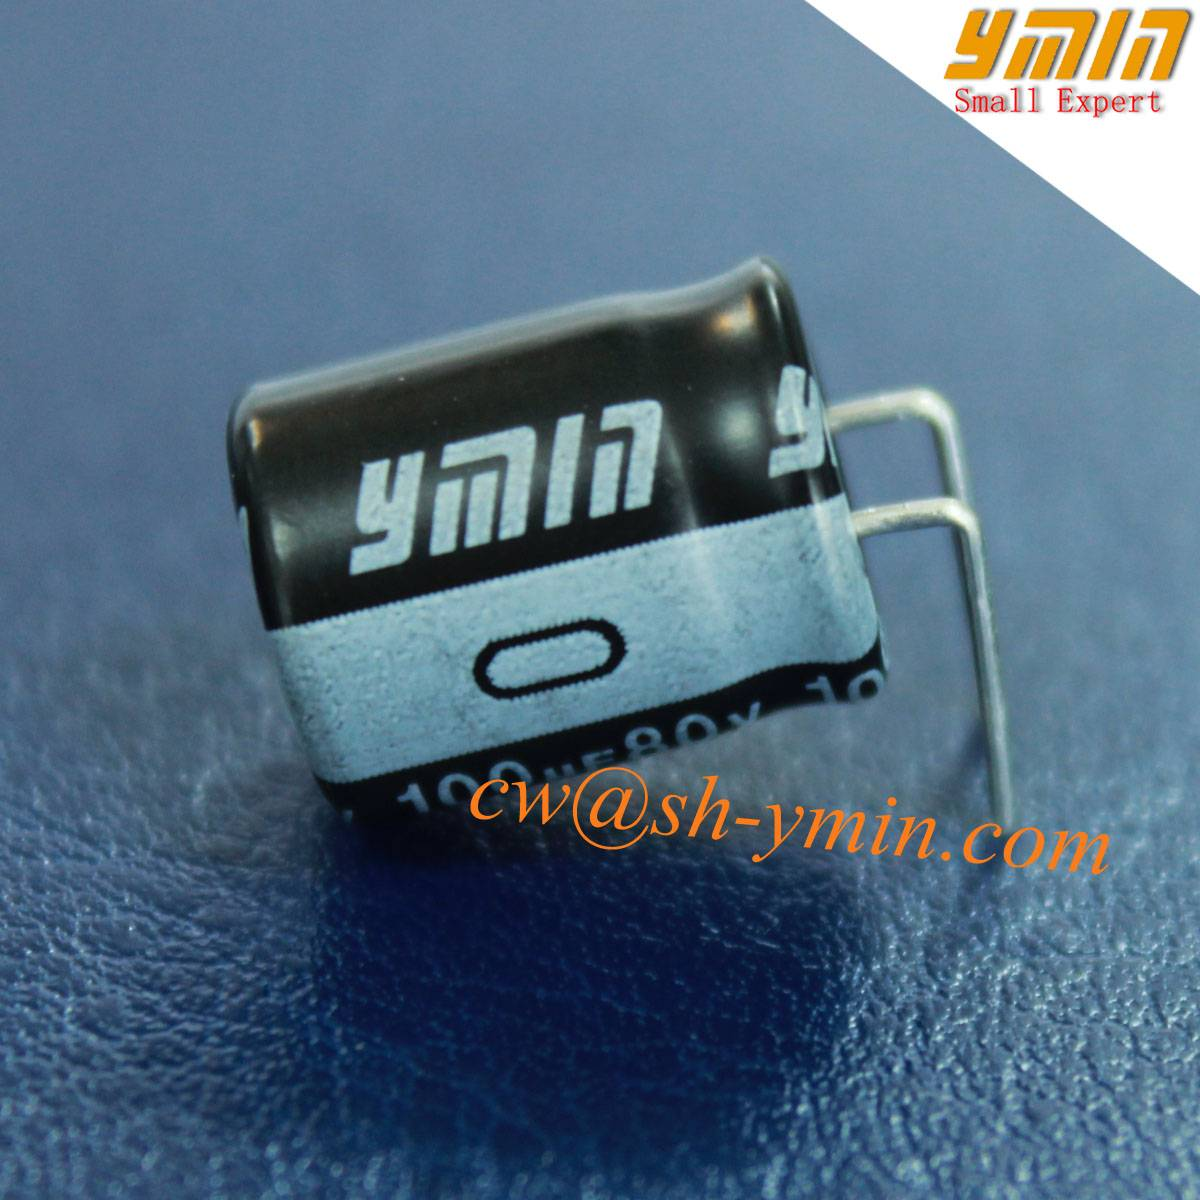 105°C 6000 Hours 100uF 80V Capacitor Radial Electrolytic Capacitor for LED Light and Energy Saving L